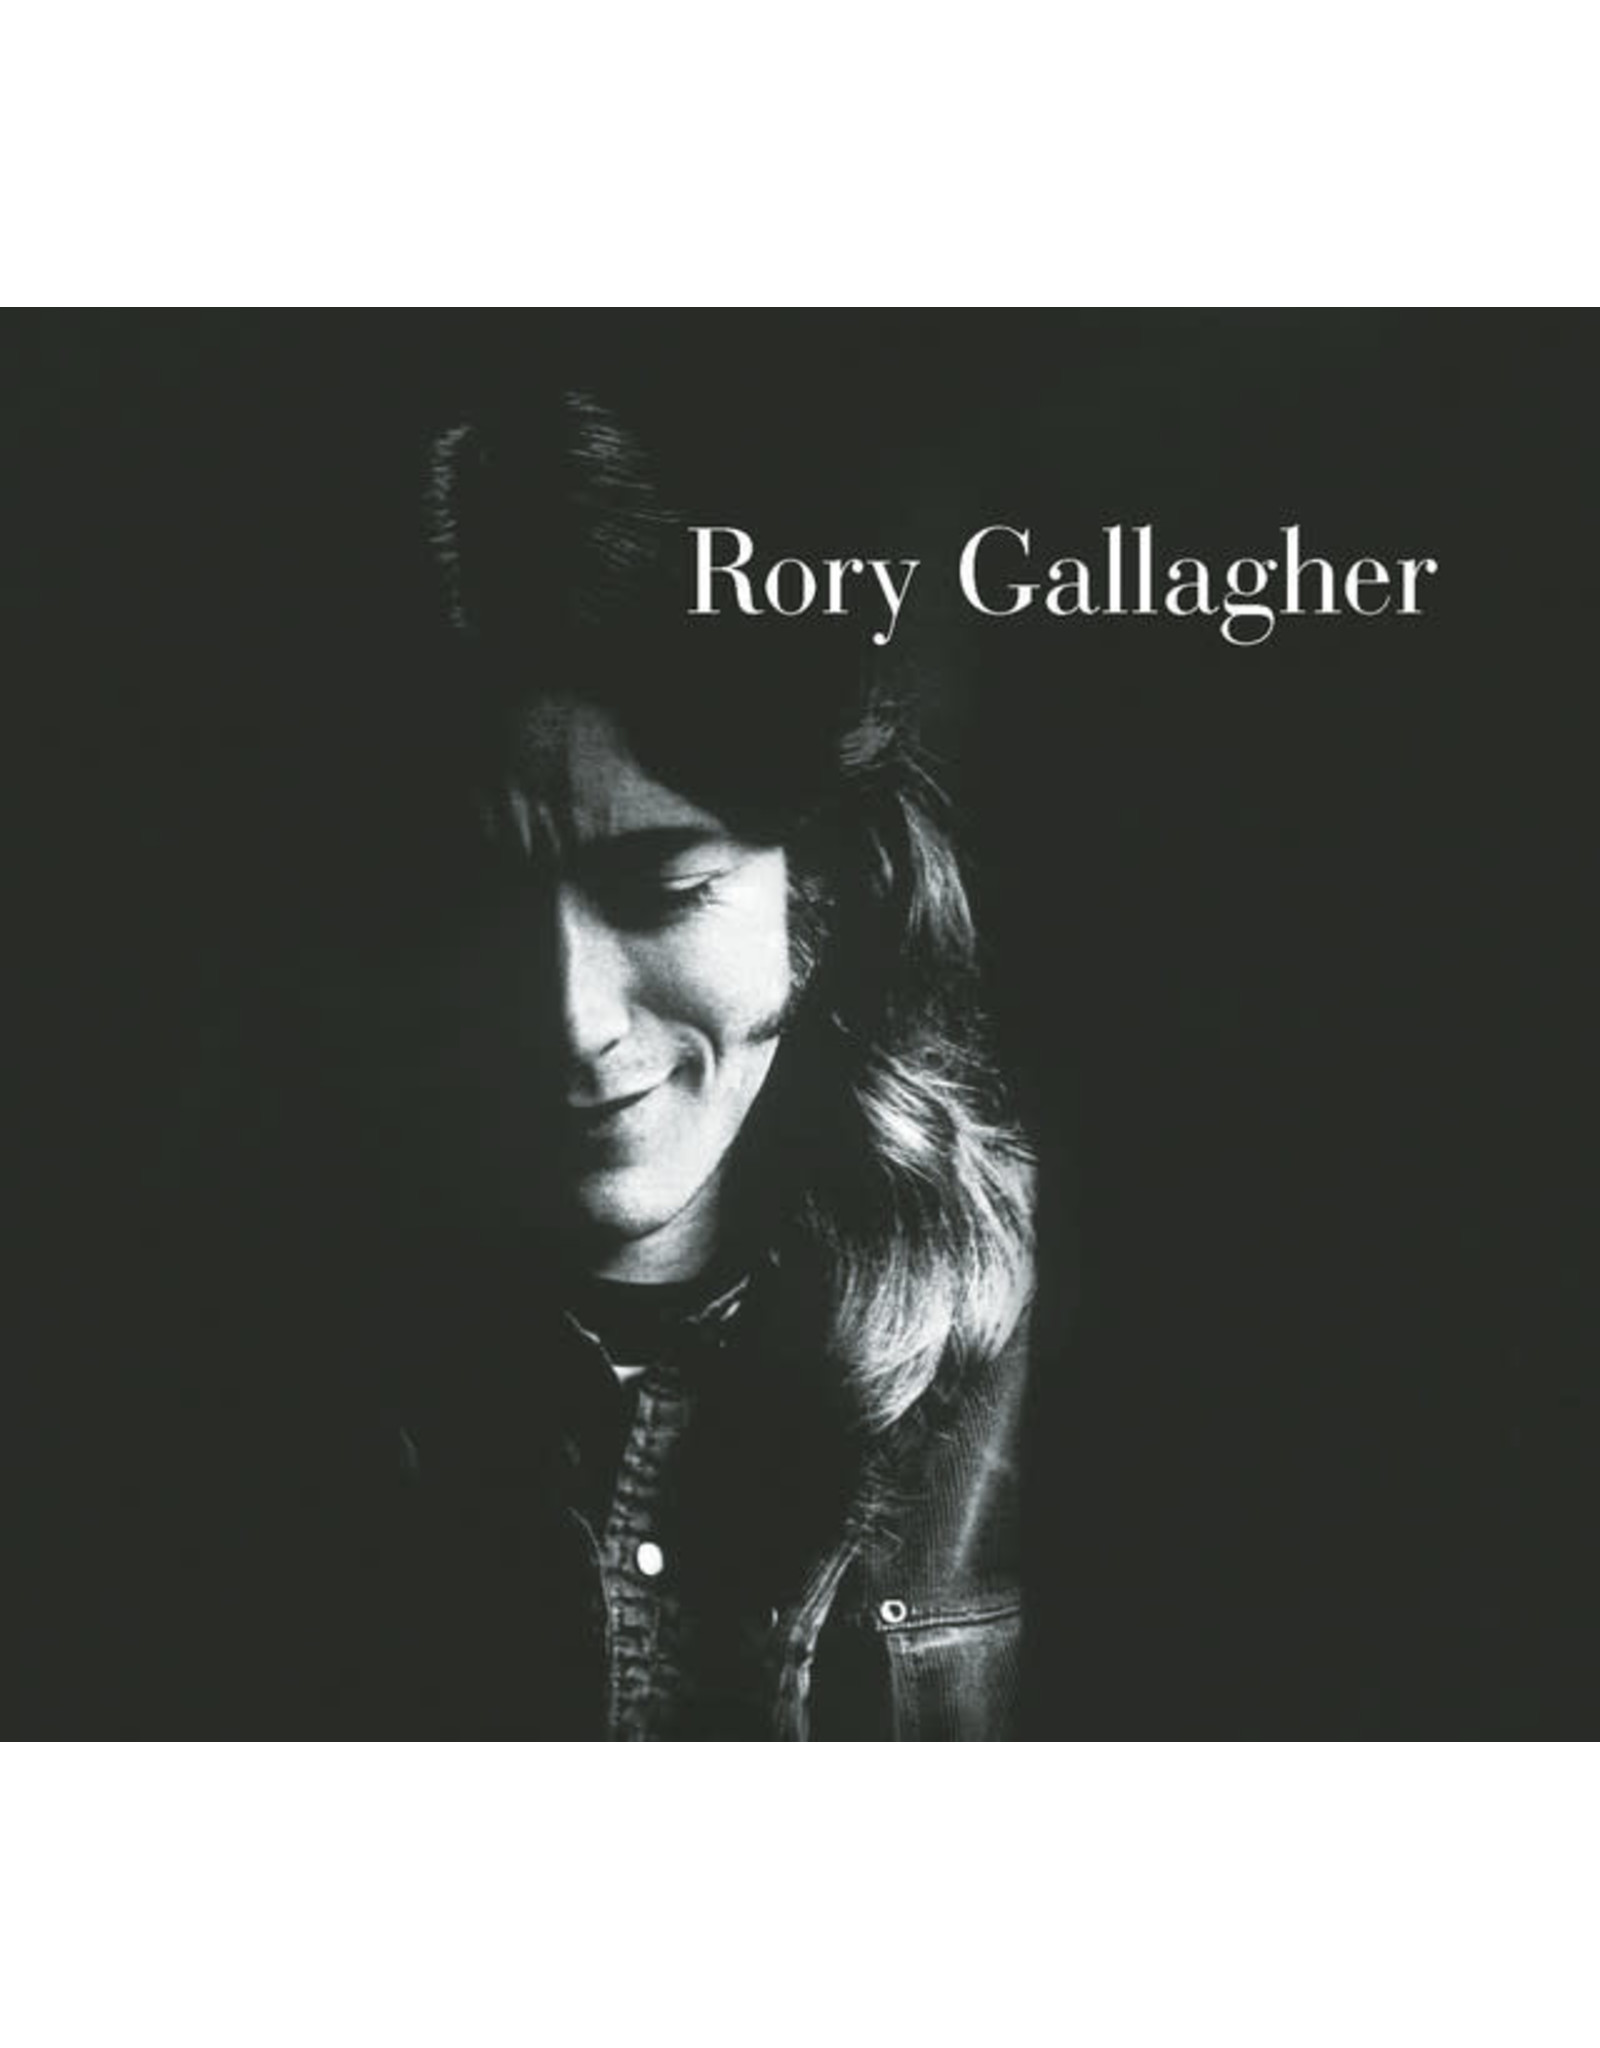 Vinyl Rory Gallagher - S/T. Final sale